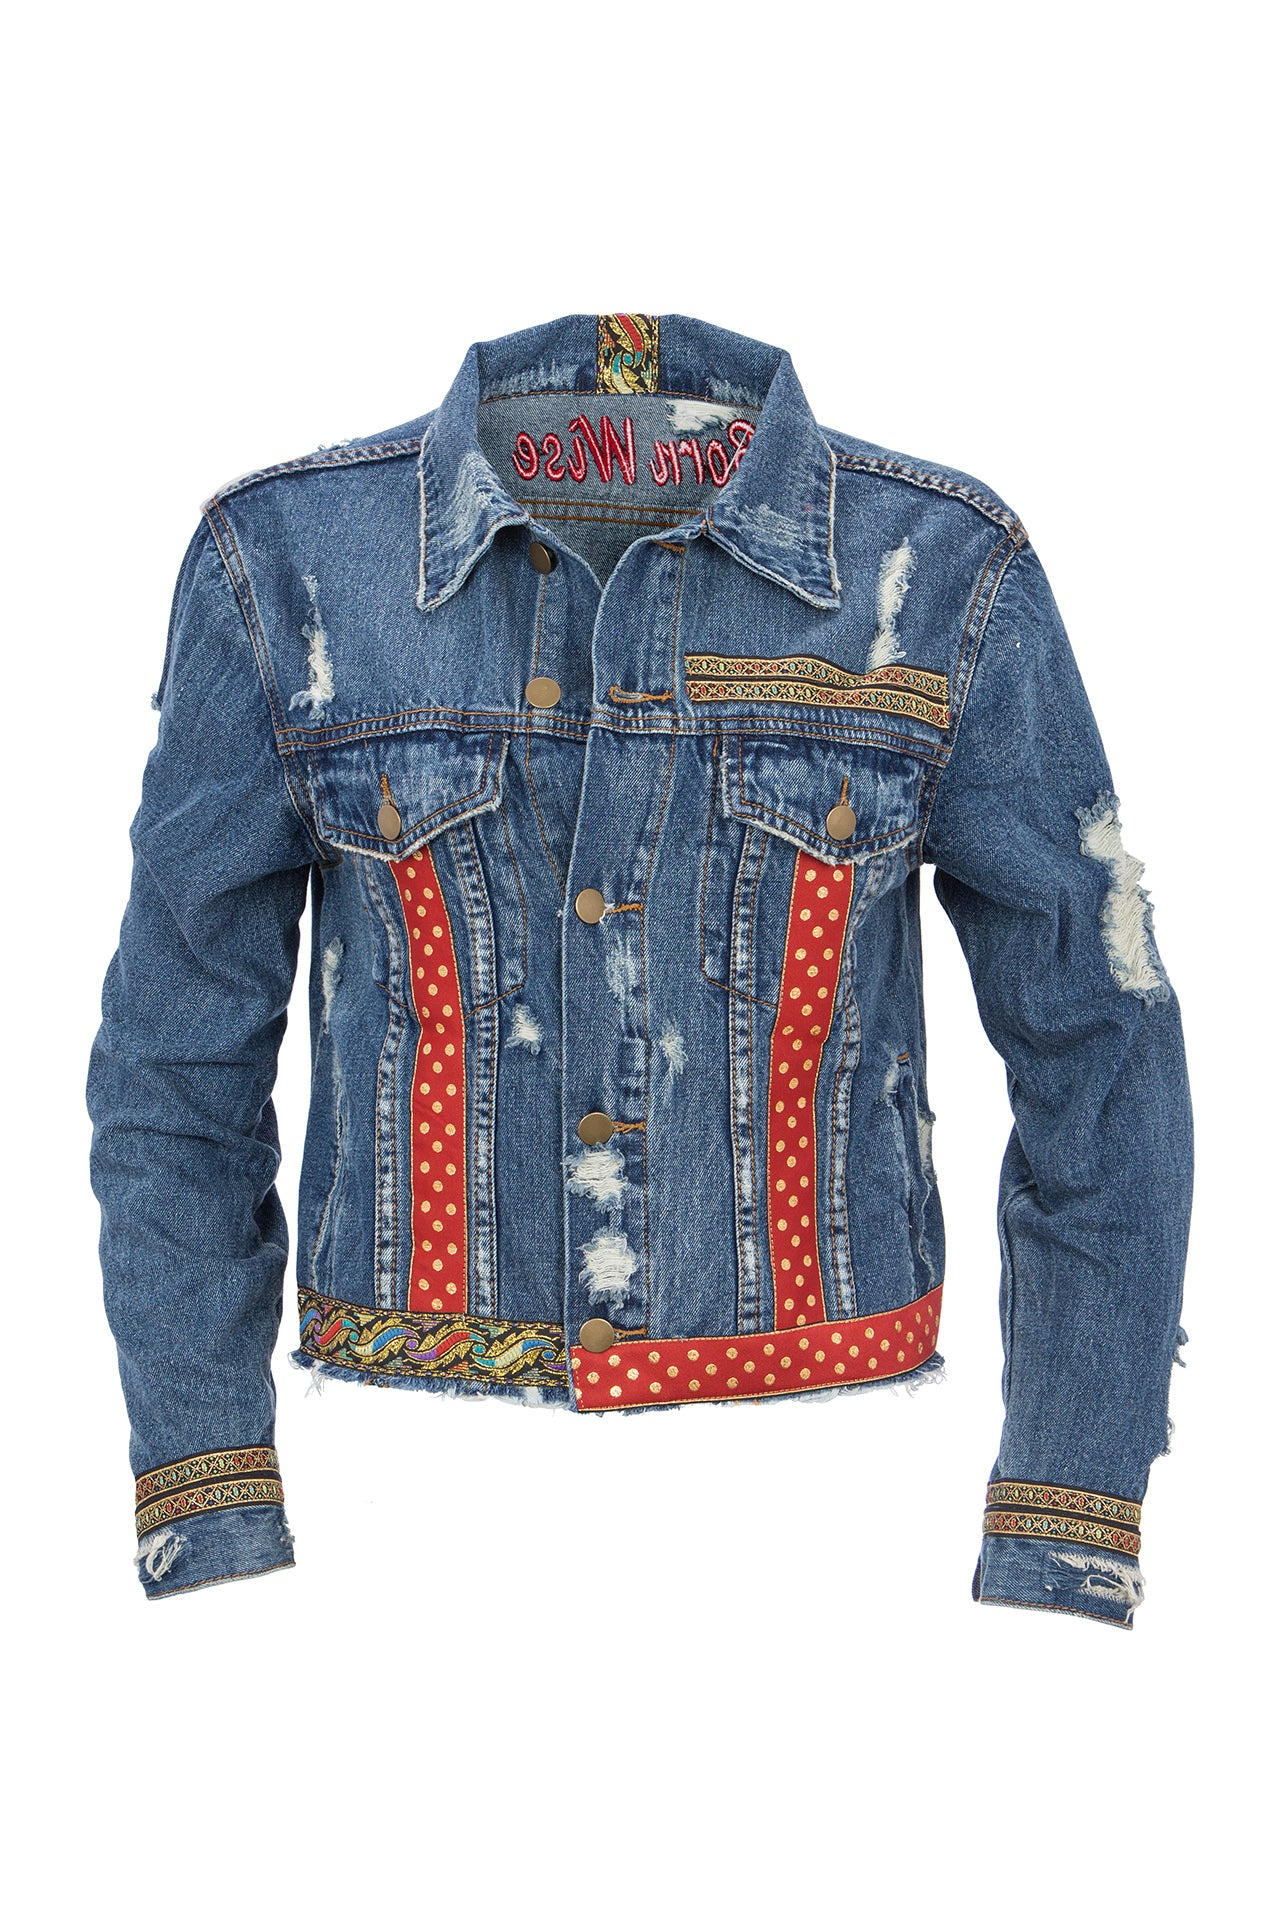 Born Wise Denim Jacket Denim Jackets - artTECA